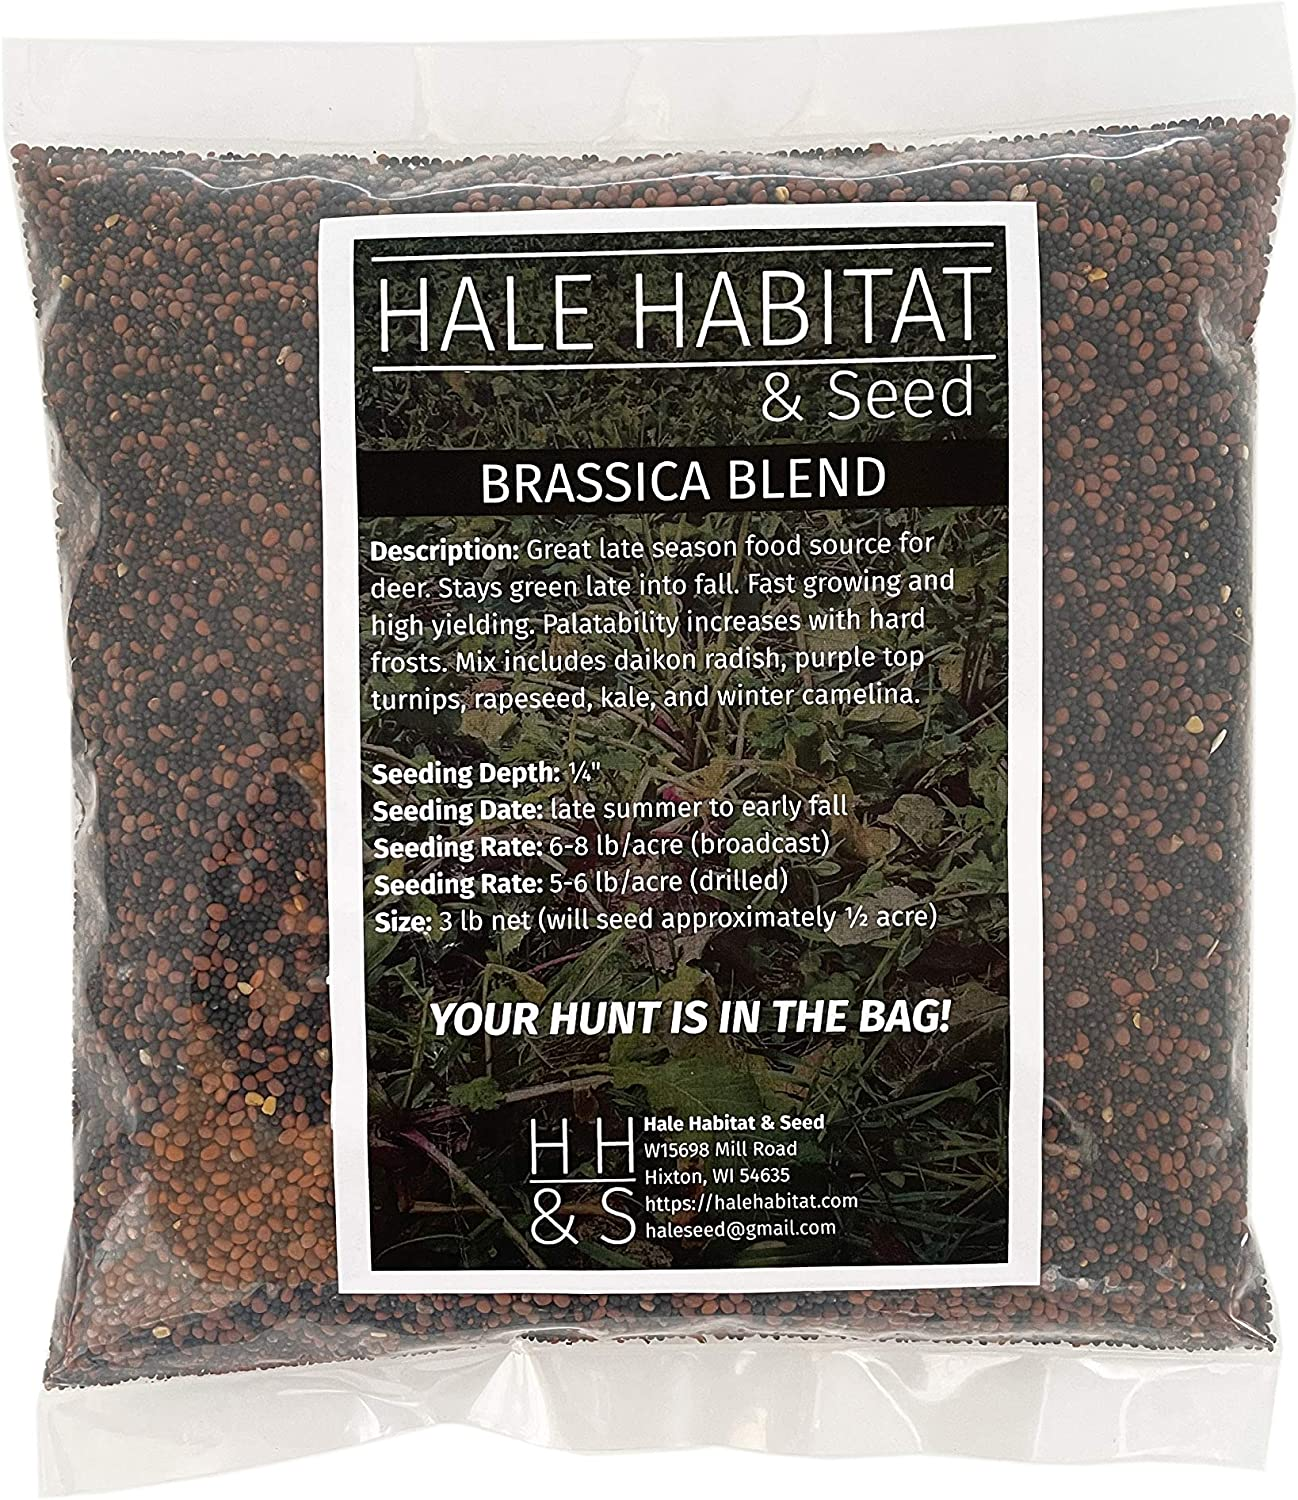 Hale Habitat & Seed, Brassica Blend, Deer Food Plot Seed, Fall Planting, 1/2 Acre, Highly Attractive Fall Food Plot